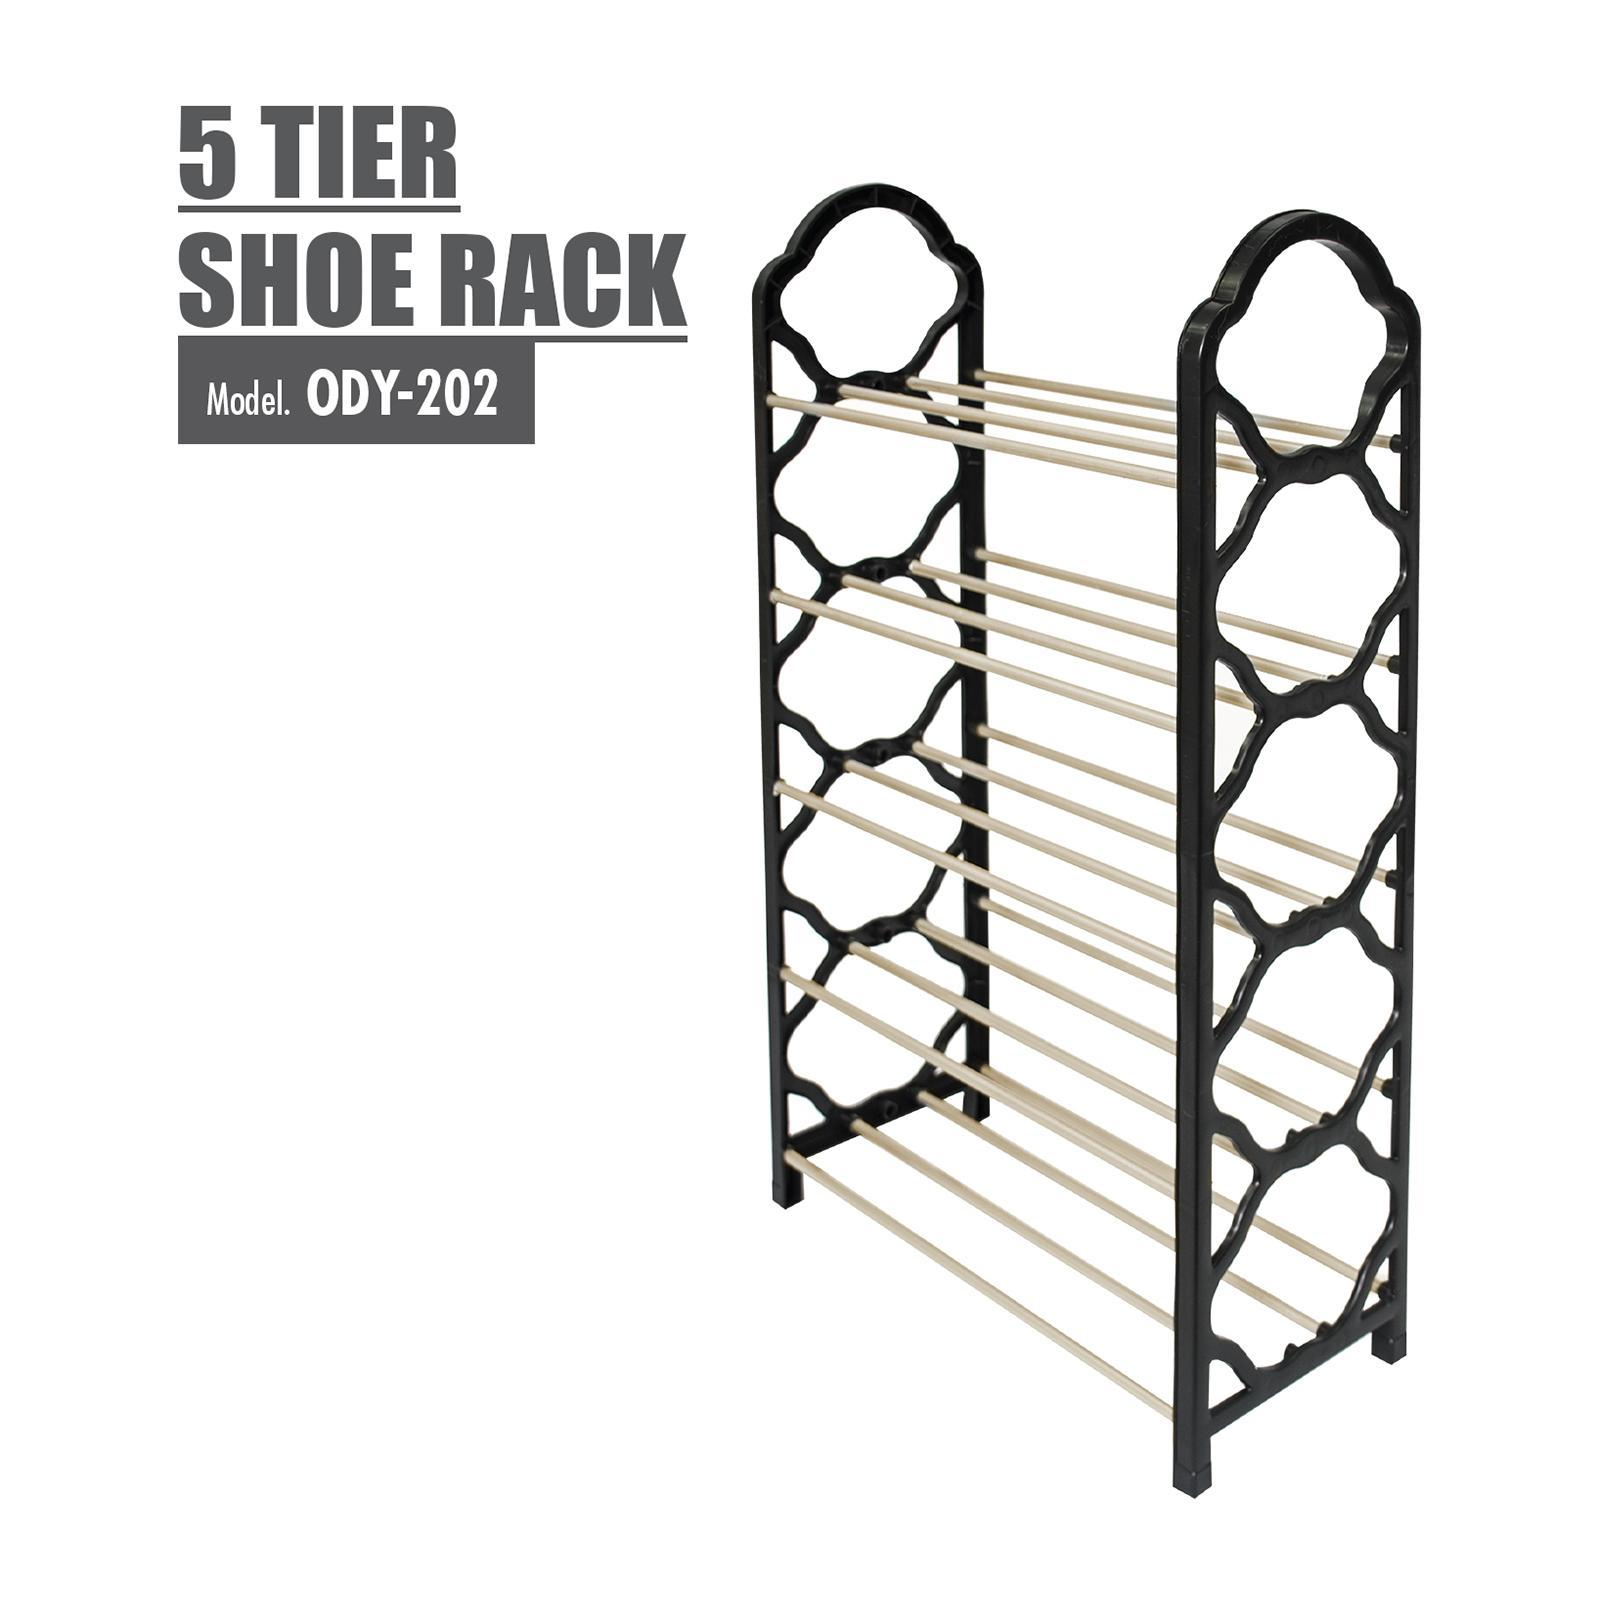 Houze 4 Tier Shoe Rack - ODY-203